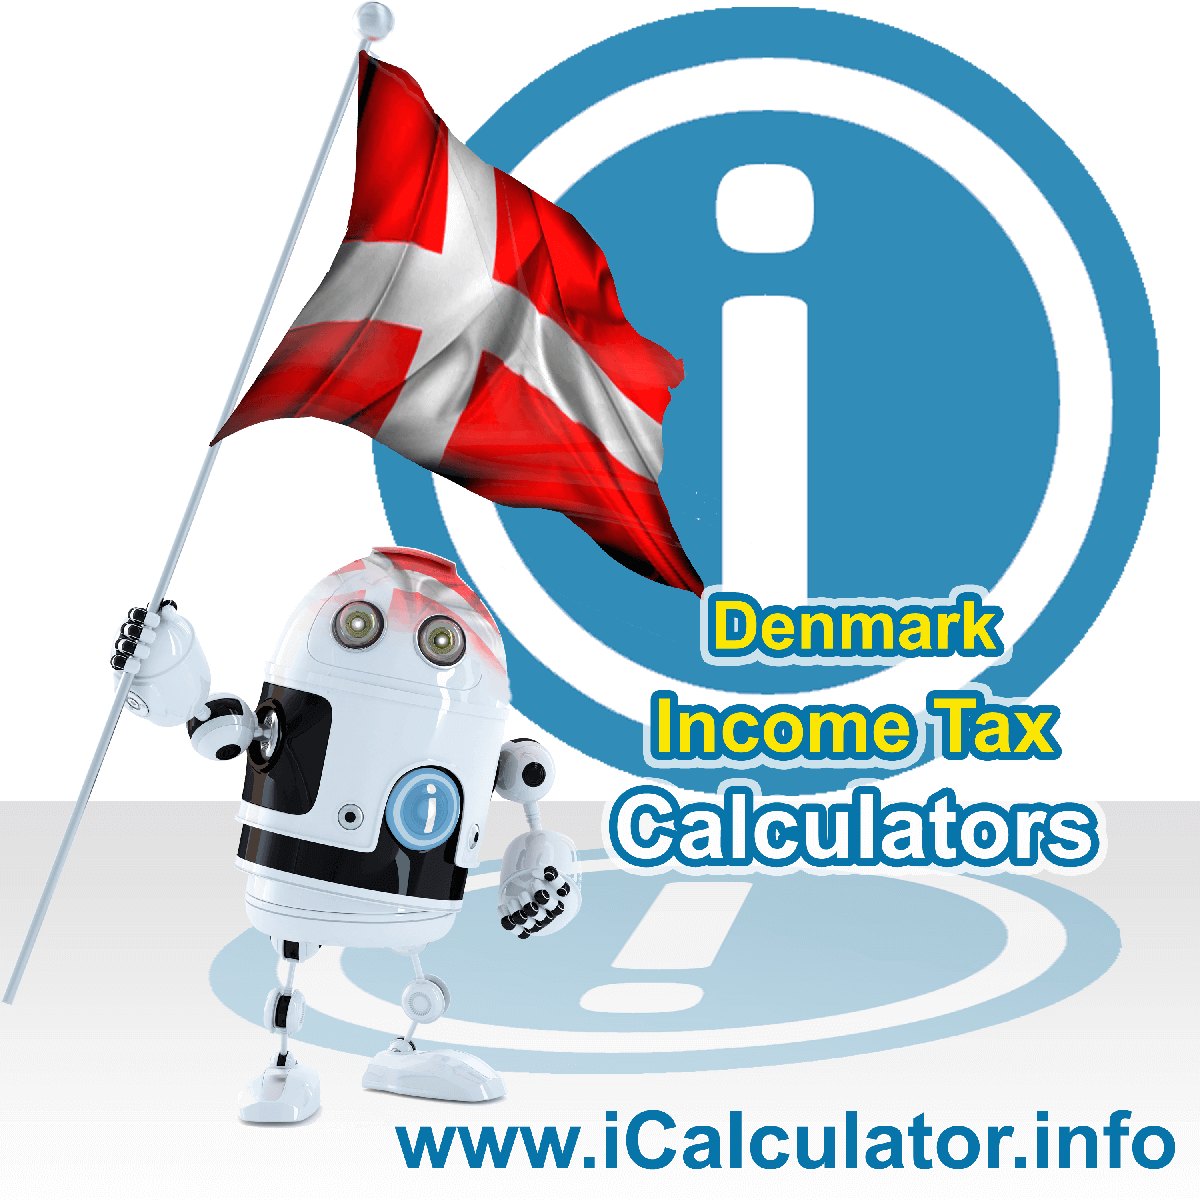 Denmark Income Tax Calculator. This image shows a new employer in Denmark calculating the annual payroll costs based on multiple payroll payments in one year in Denmark using the Denmark income tax calculator to understand their payroll costs in Denmark in 2020